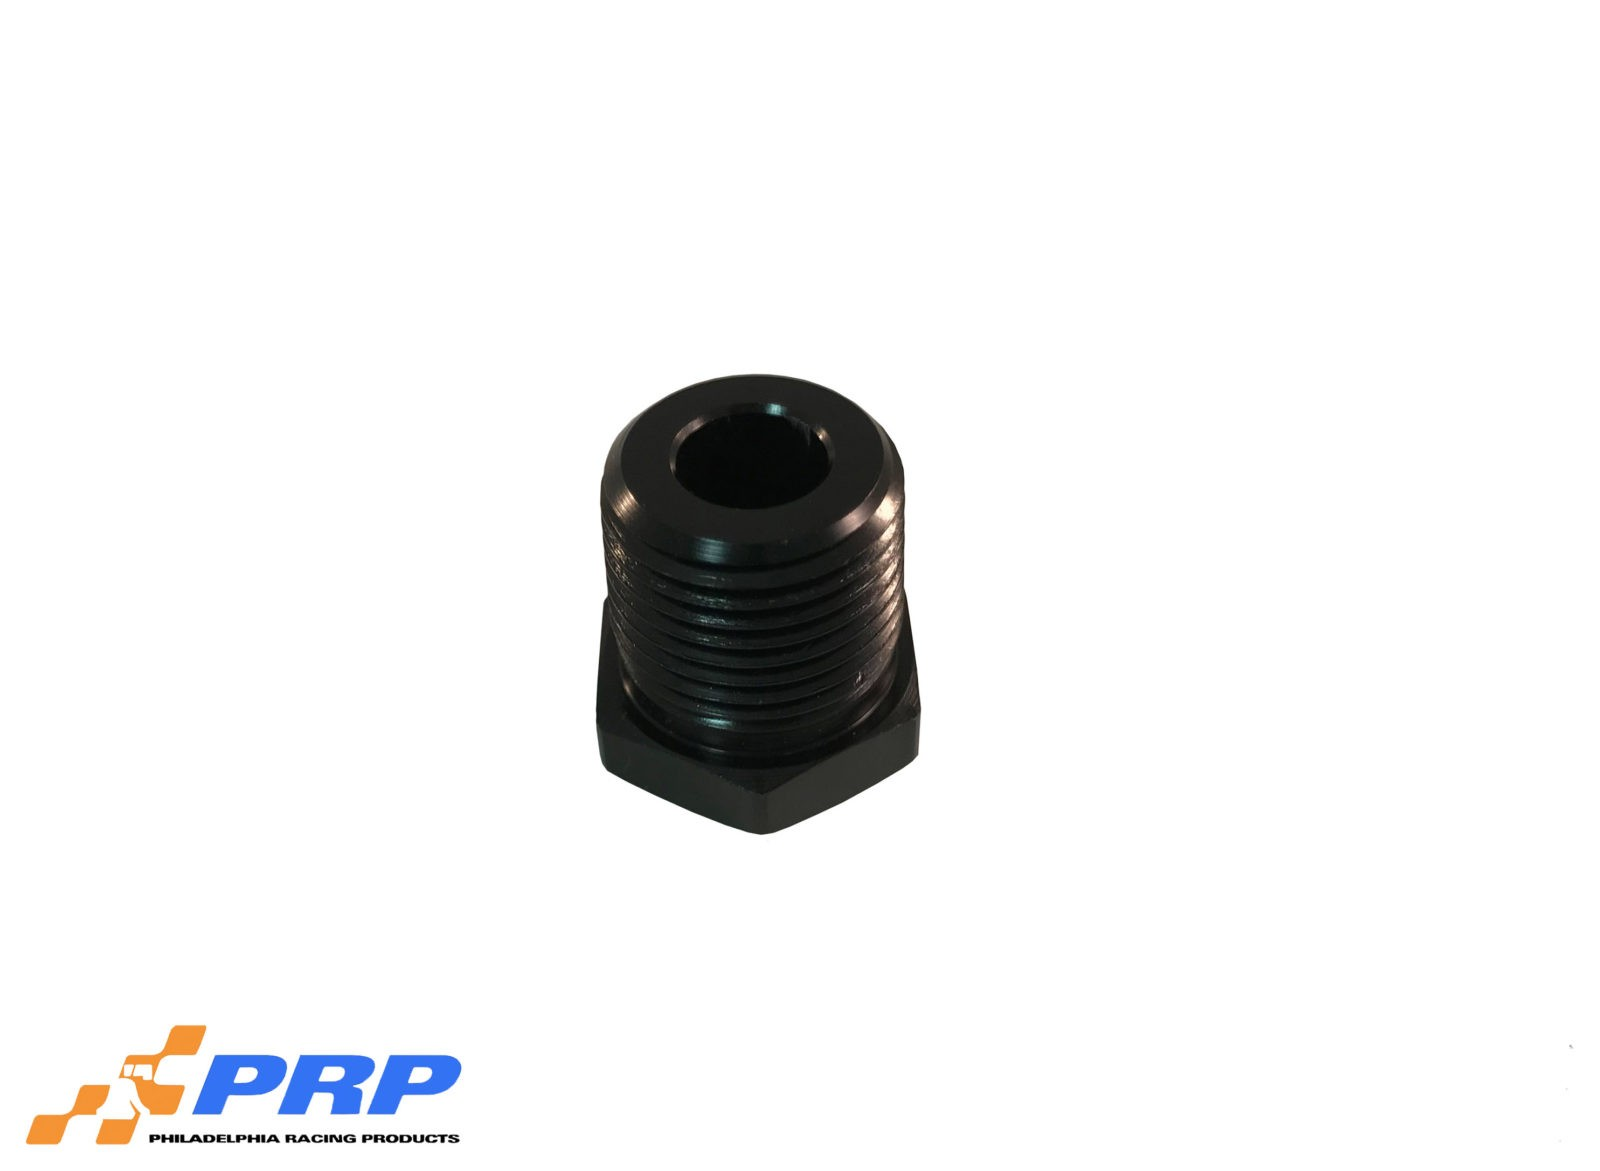 "3/8"" x 1/8"" NPT Pipe Reducer Bushing by PRP Racing Products"